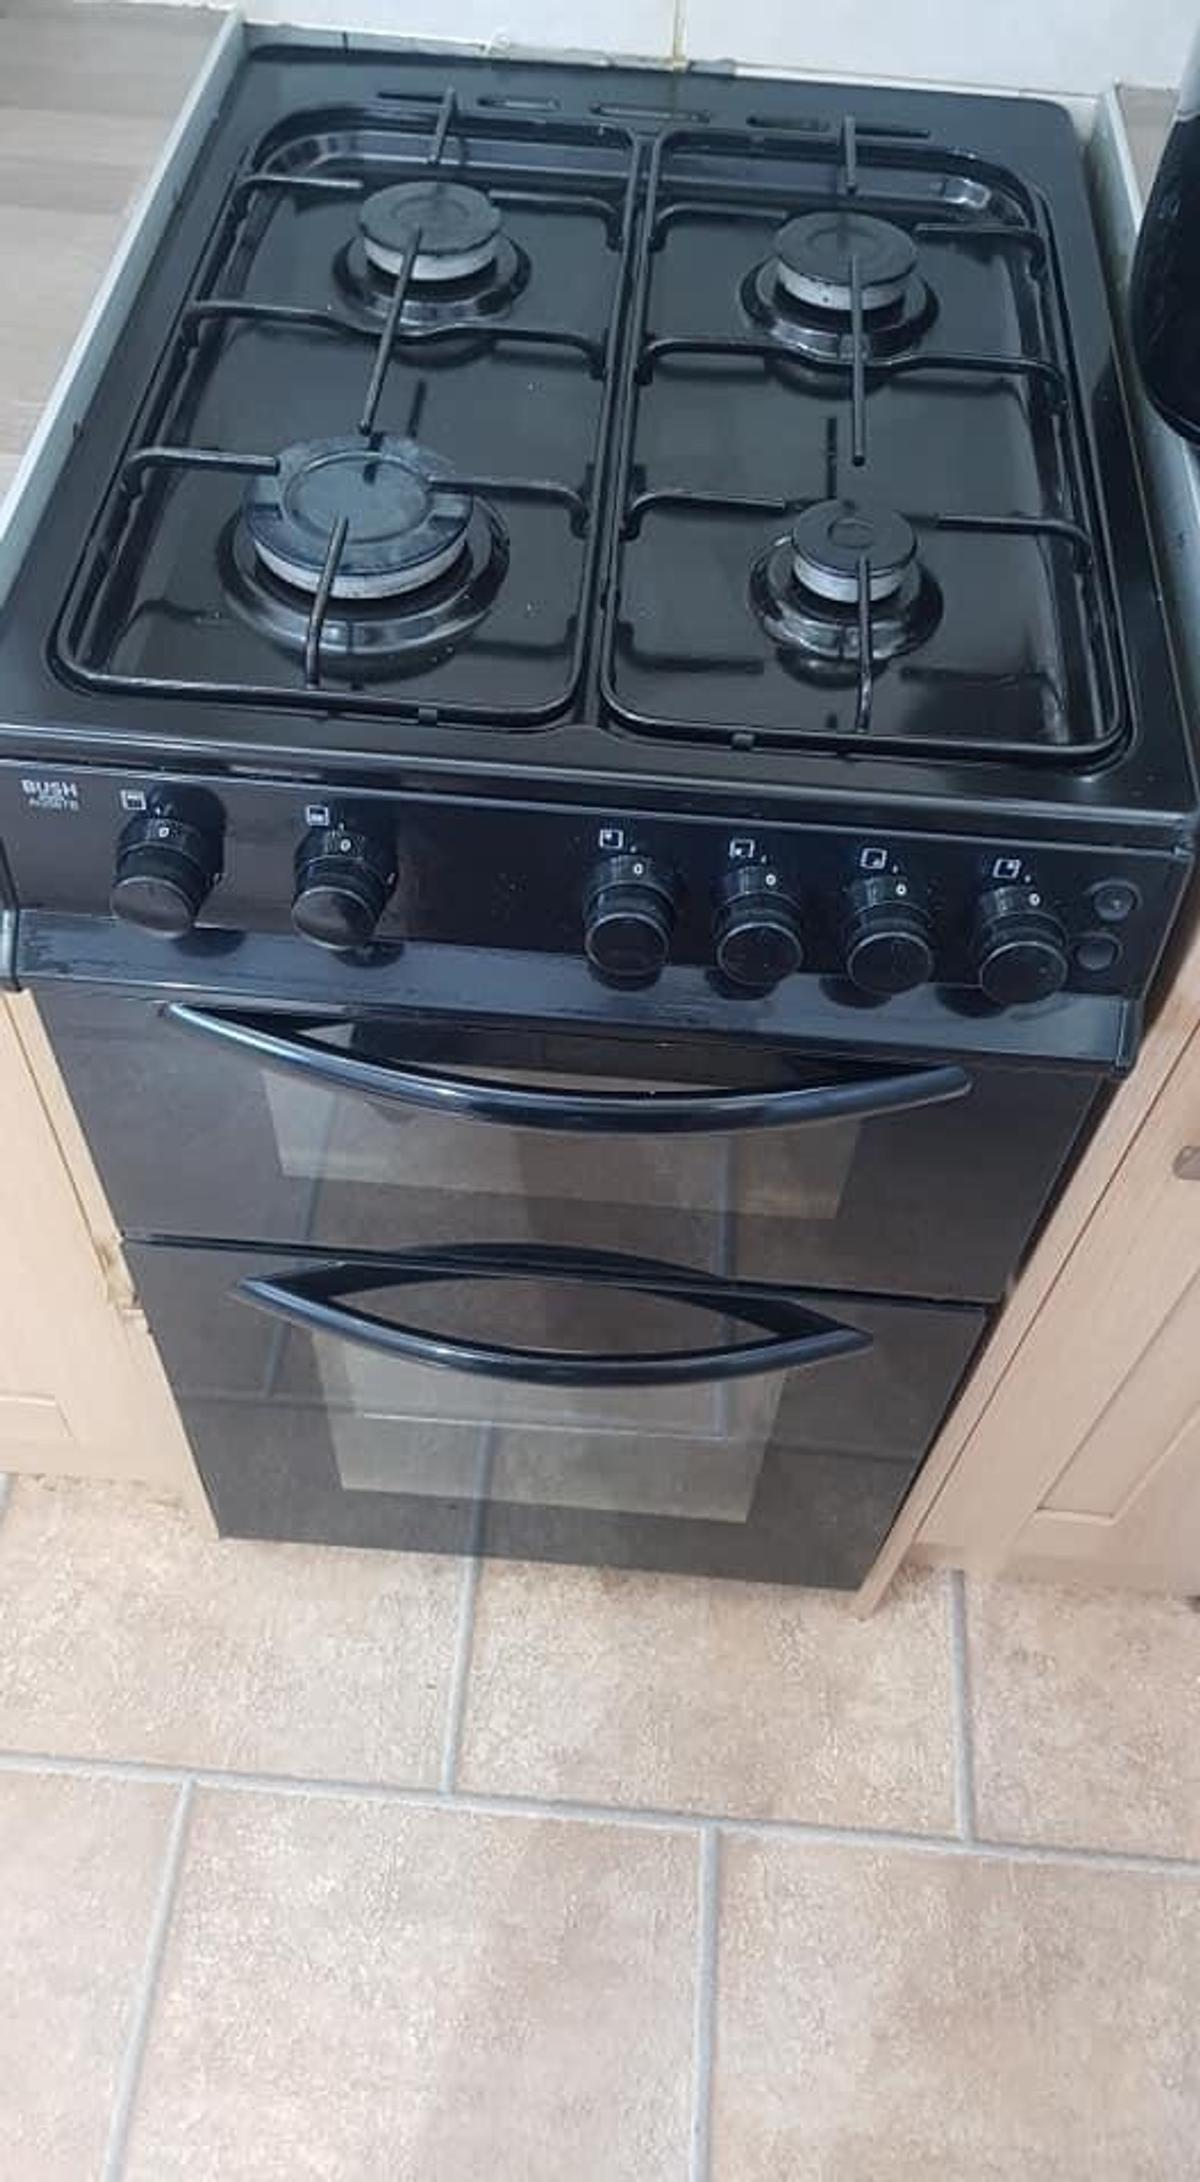 Bush gas cooker for sale 13 months old Clean brilliant condition It does need a new rubber seal around door